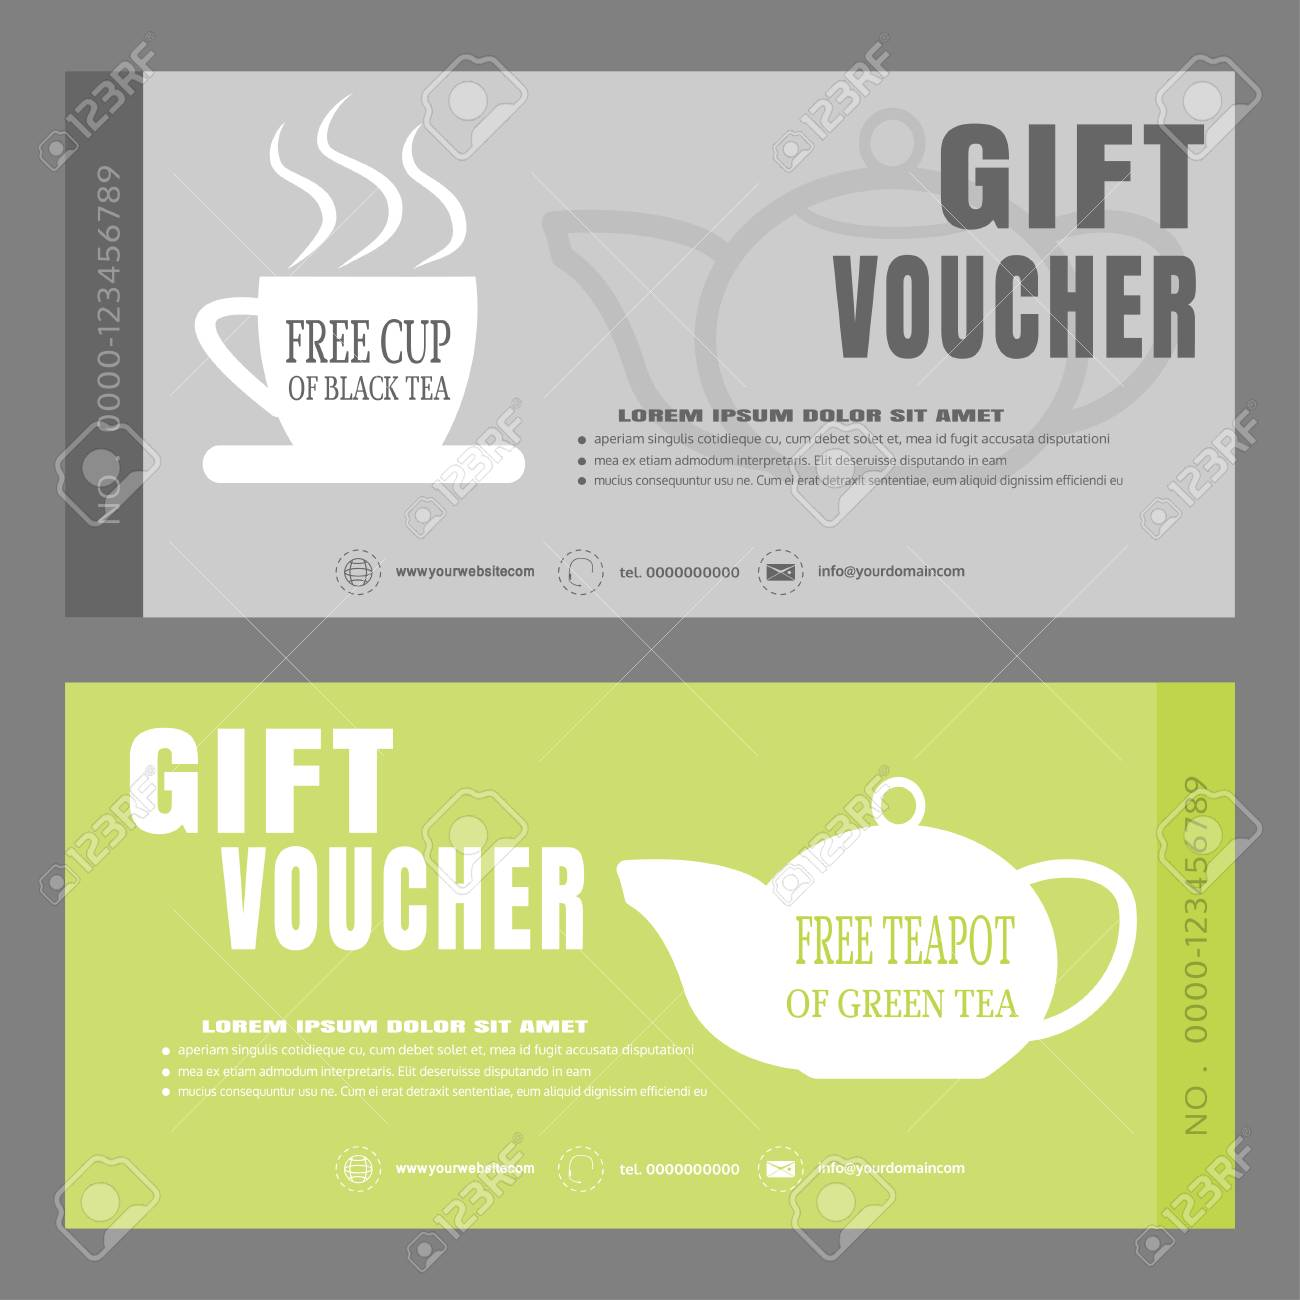 blank of gift voucher vector illustration to increase the sales